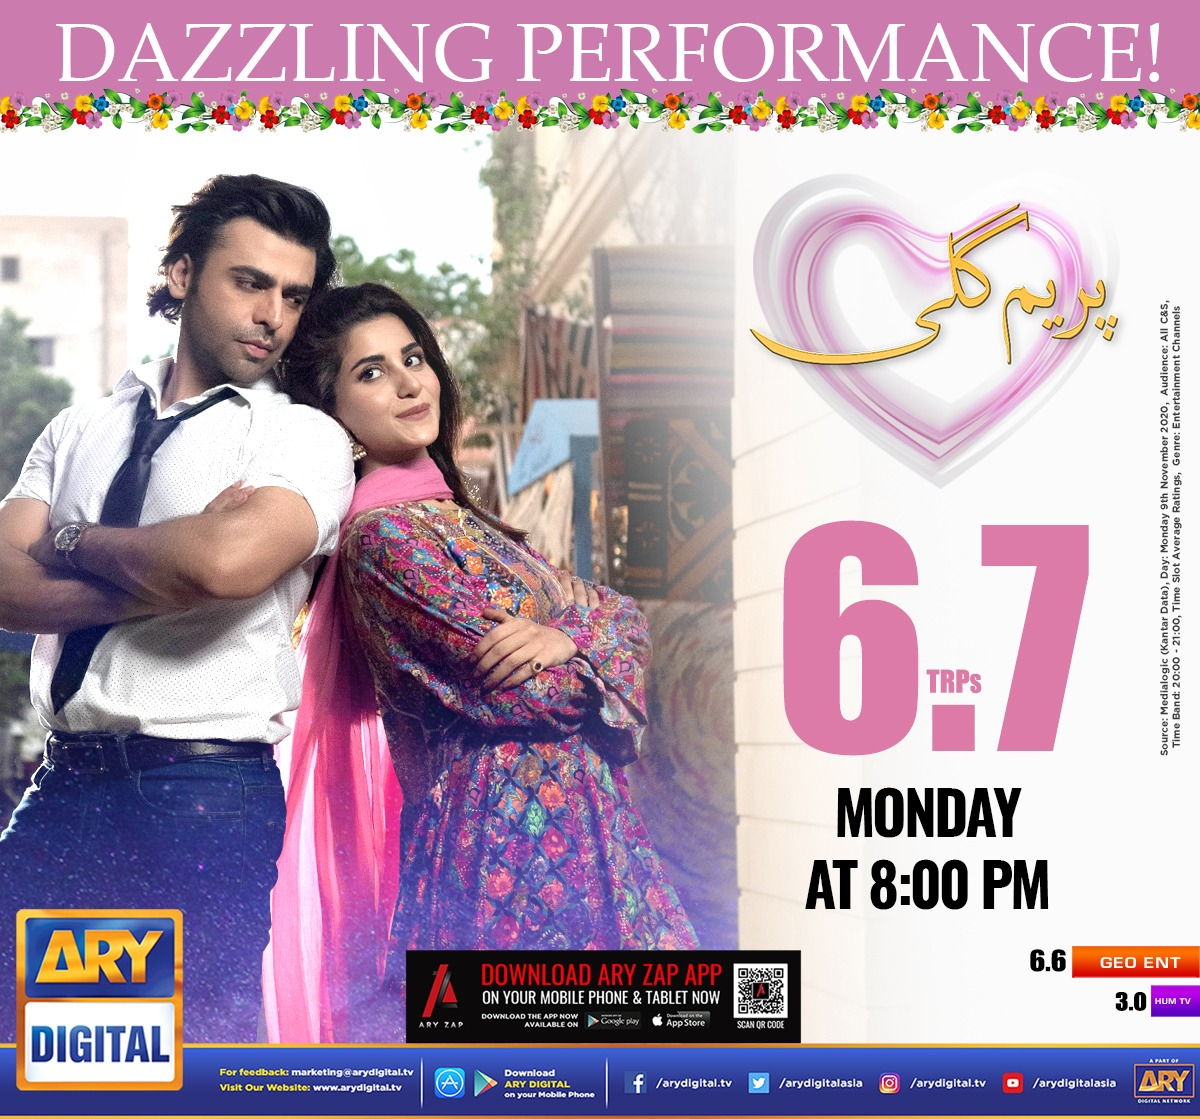 Dazzling Performance! Thank you viewers for the love you guys showed for #PremGali  Keep watching it every Monday at 8:00 PM only on #ARYDigital  @farhan_saeed @sabroofficial https://t.co/8ag7sS9X7j